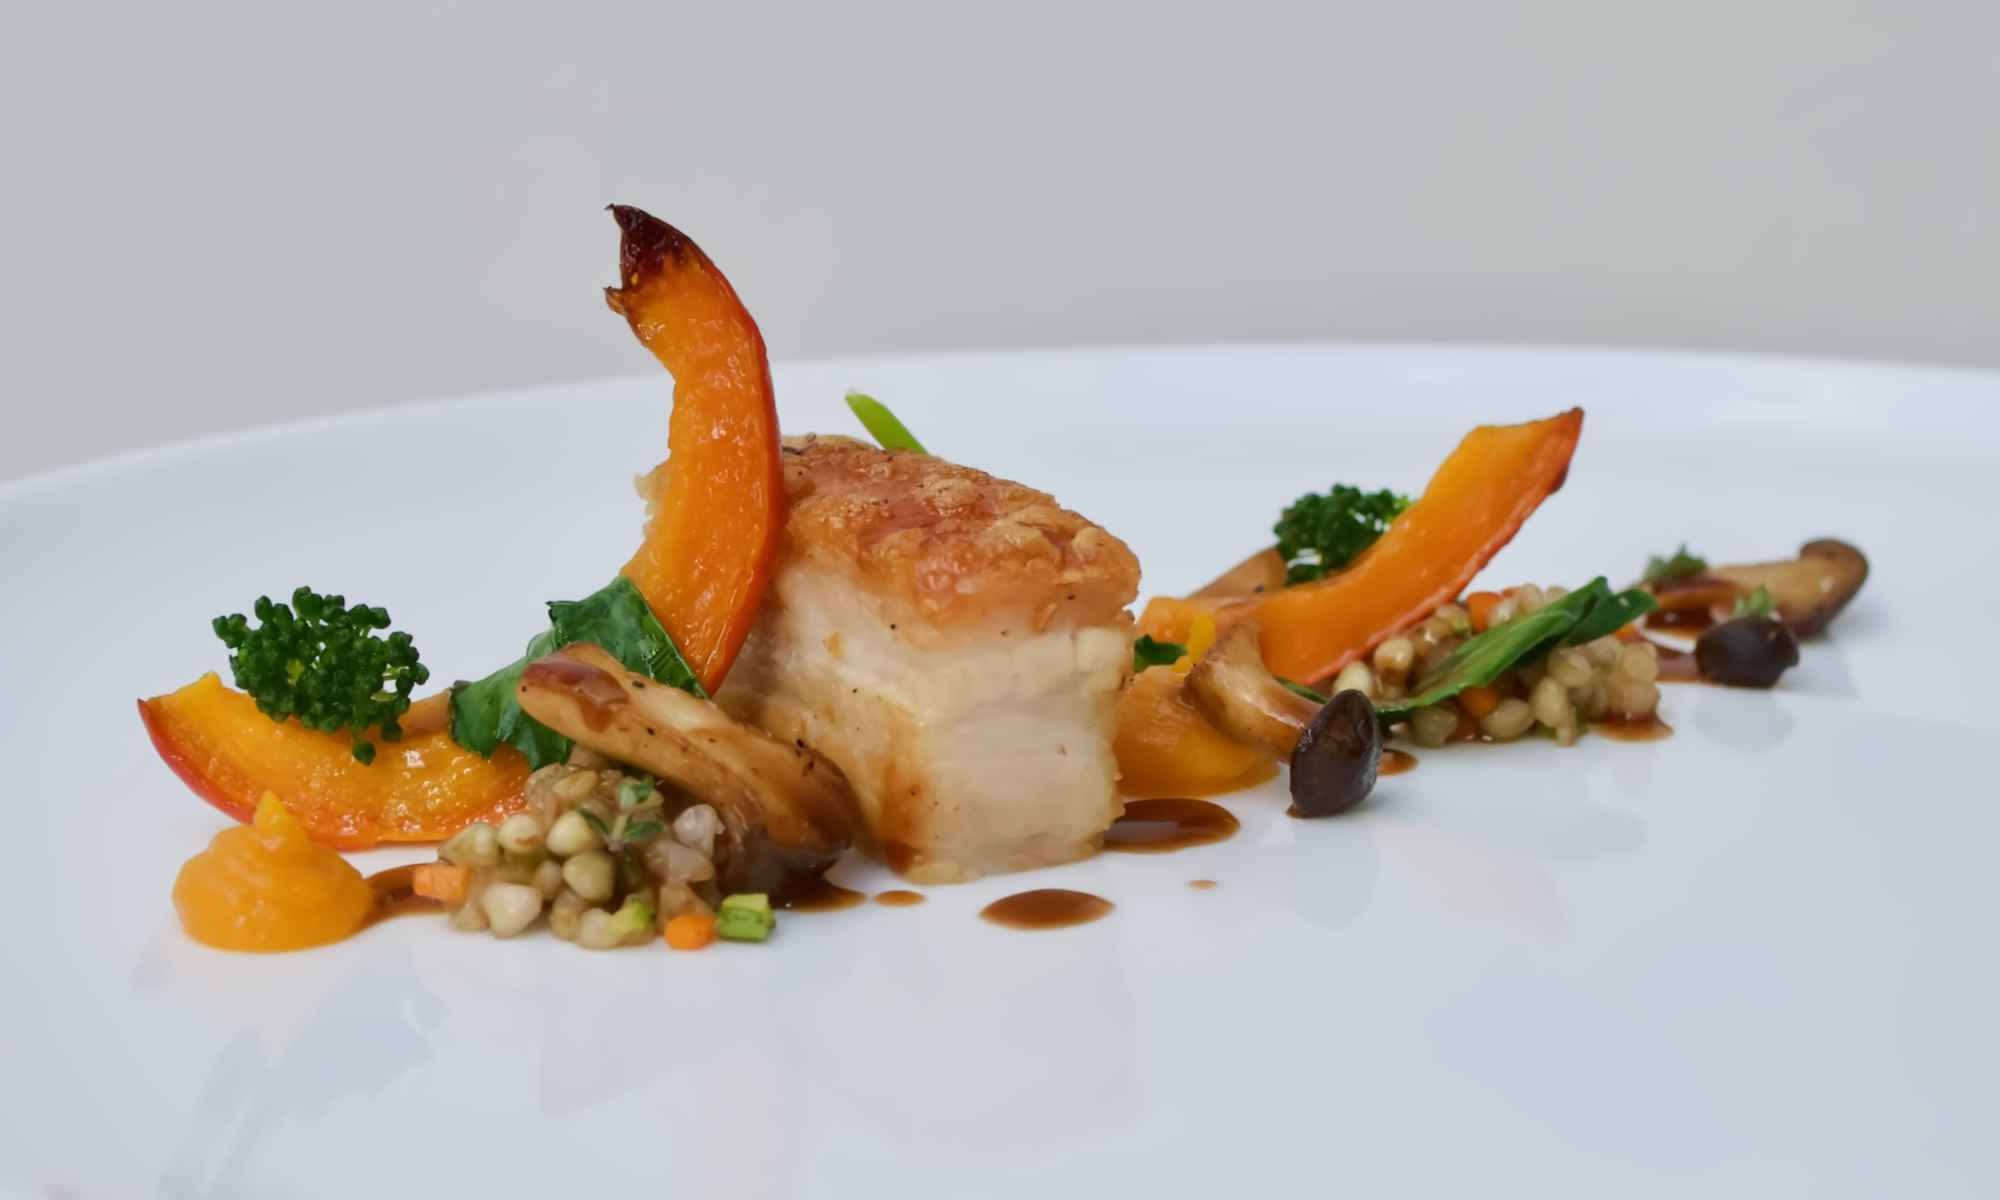 Pork belly, roasted squash & mushroom - Food by Pollensa Private Chefs